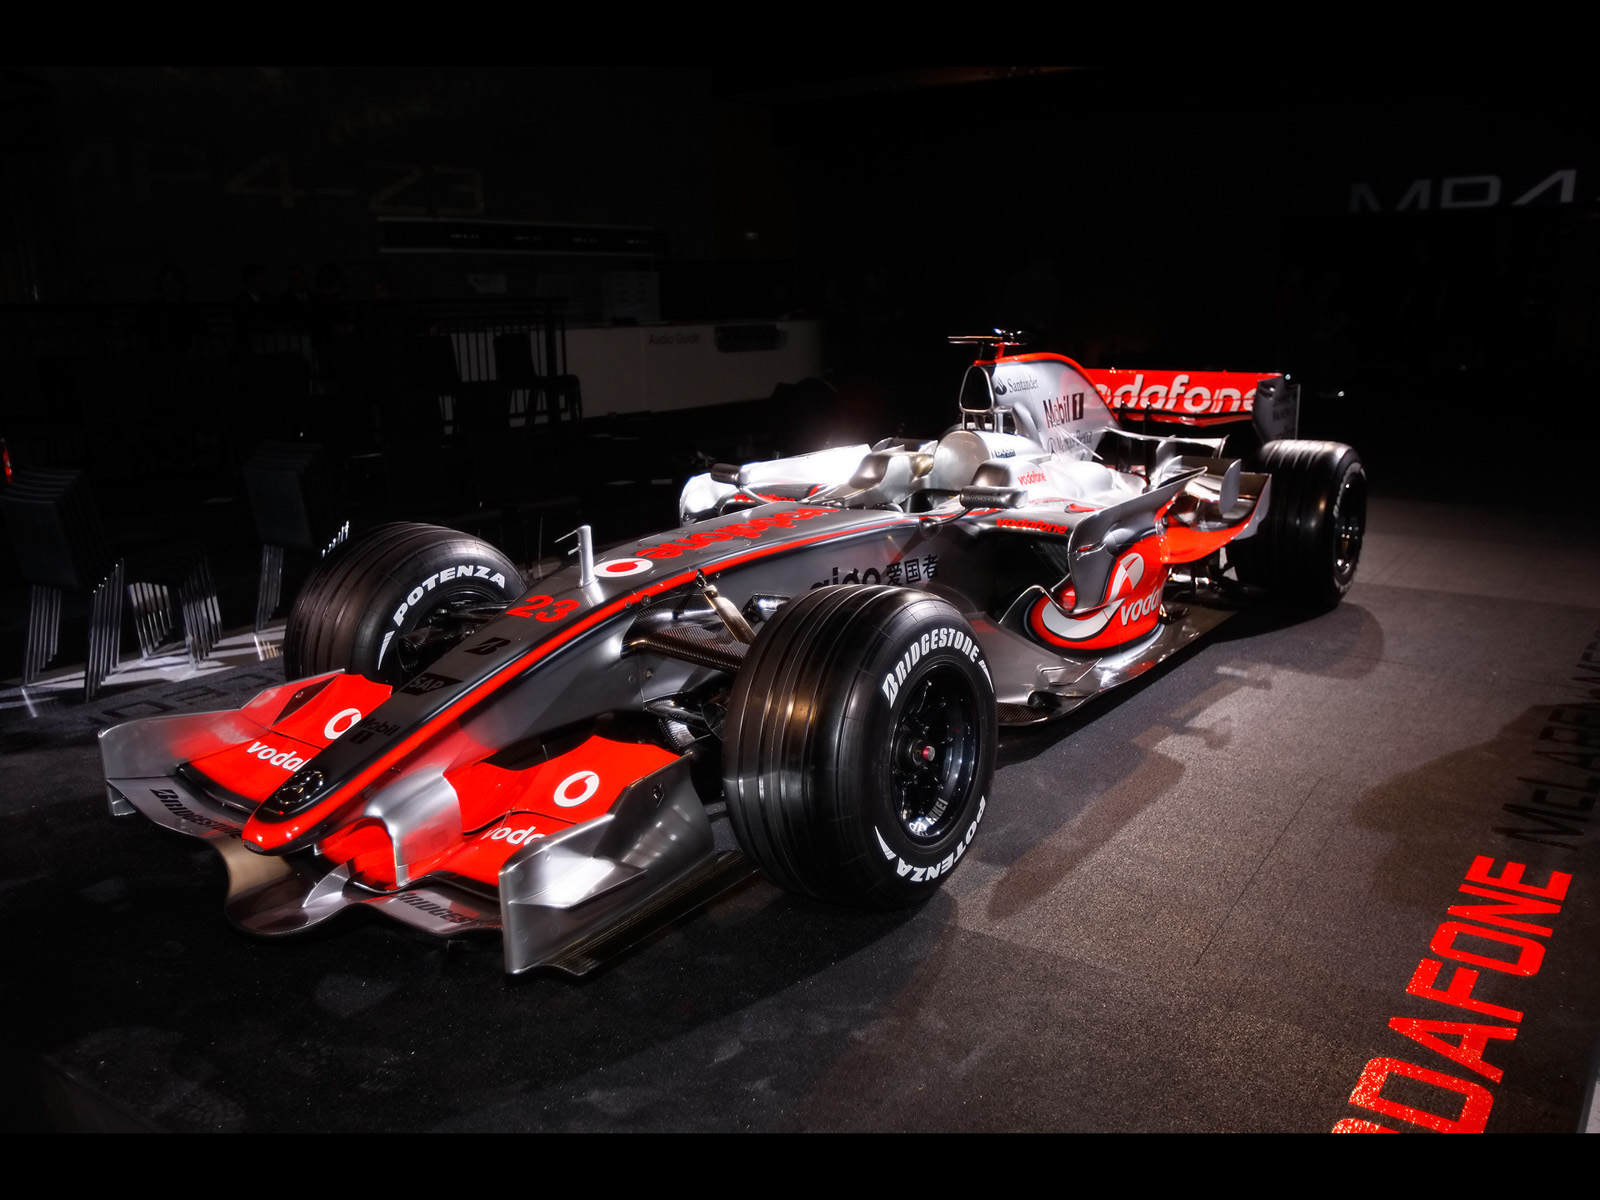 Mclaren Mercedes Benz Hd Formula 1 Wallpapers Hd Car